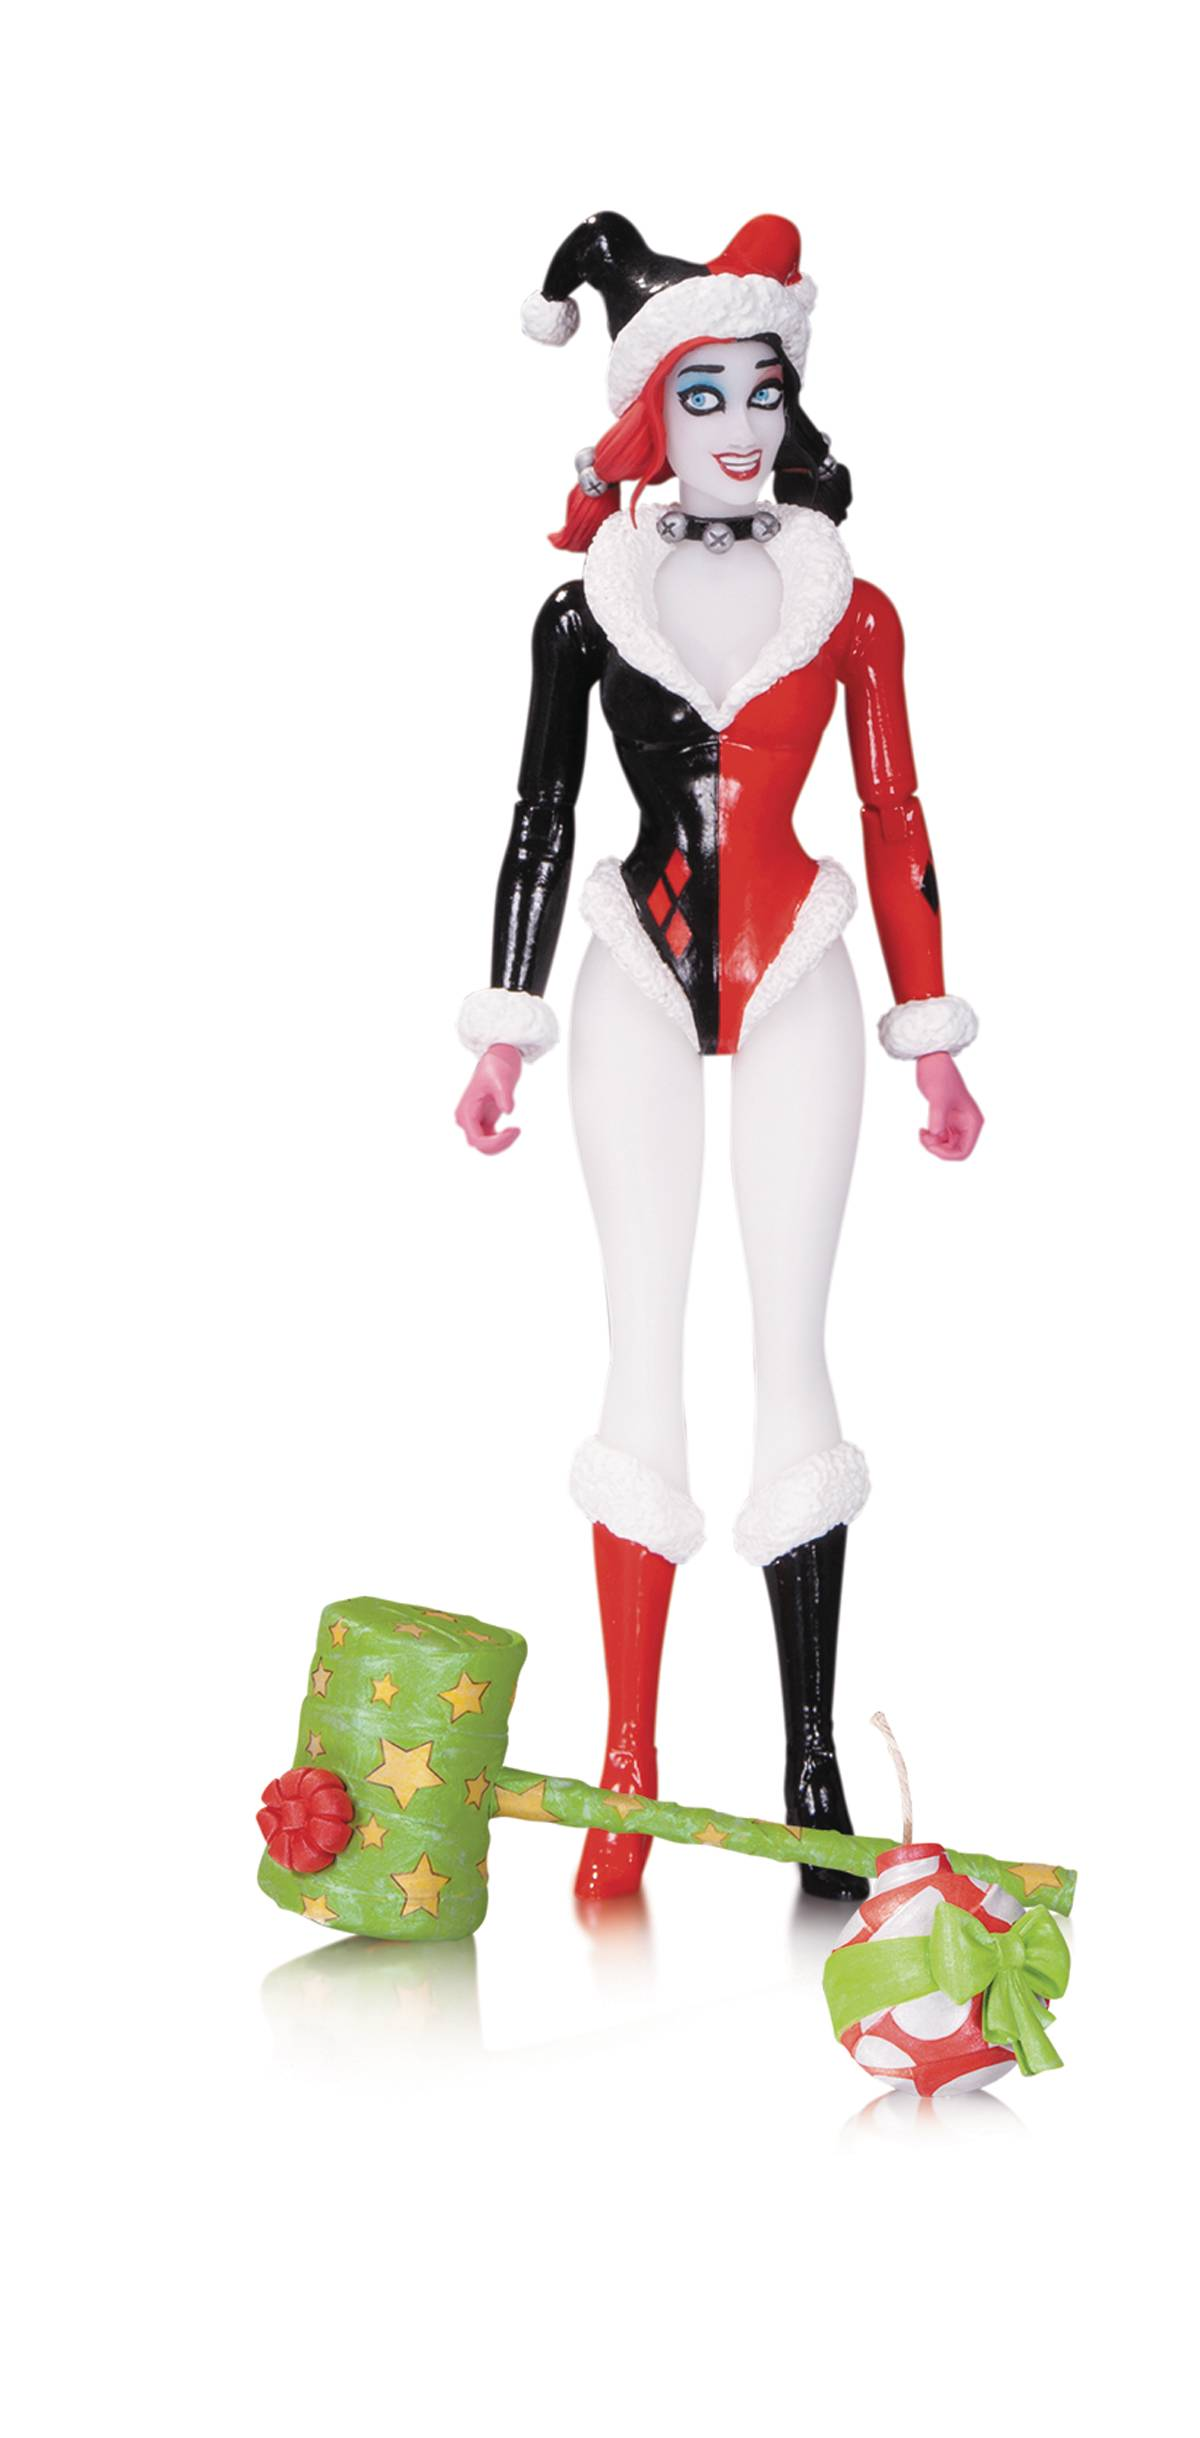 DC Comics Designer Series Conner Harley Quinn Holiday Figure